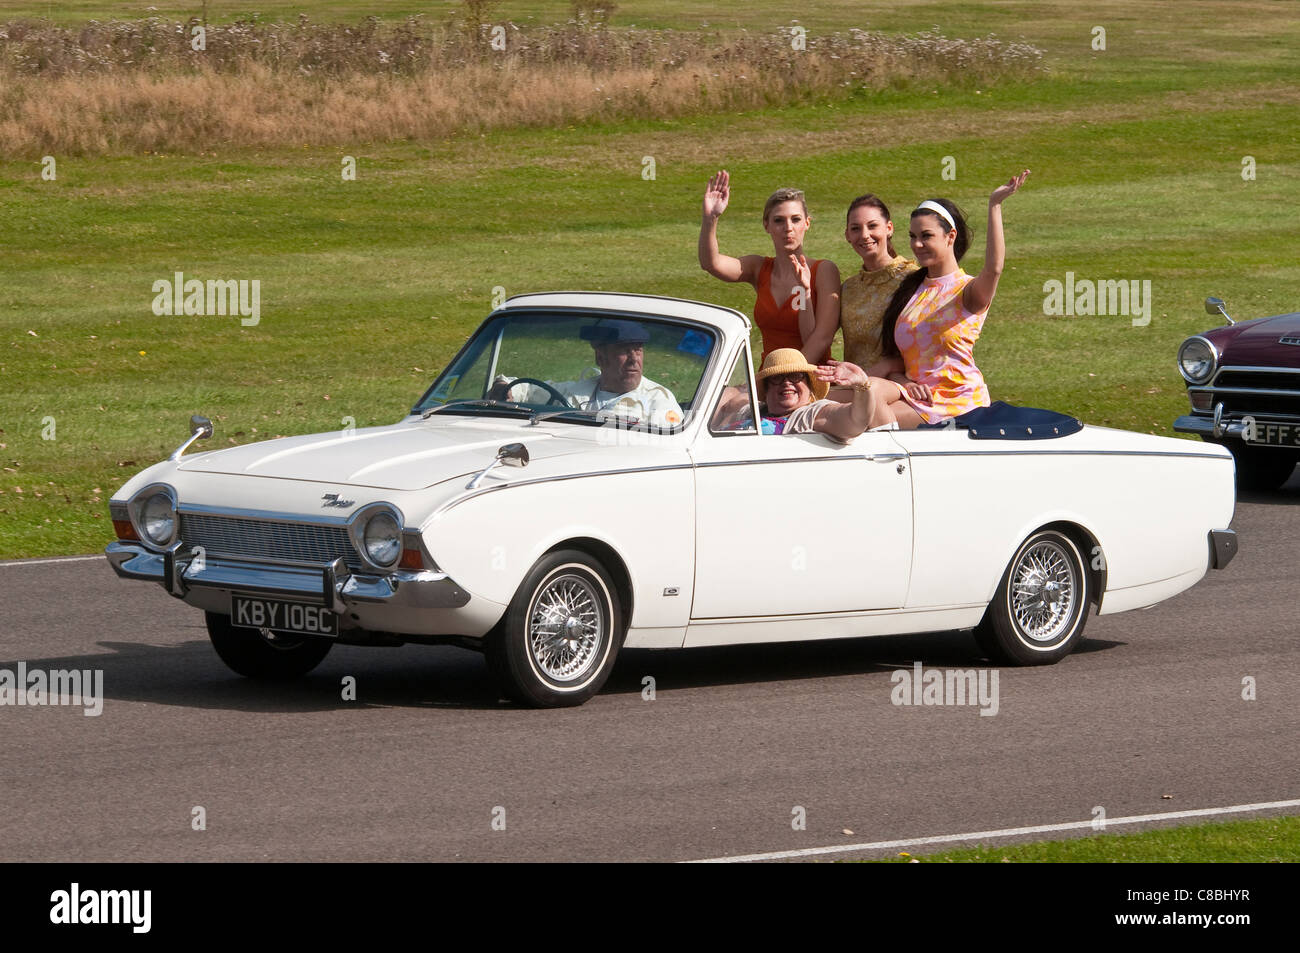 1963 Ford Corsair Quot Crayford Quot Convertible Stock Photo Royalty Free Image 39593563 Alamy